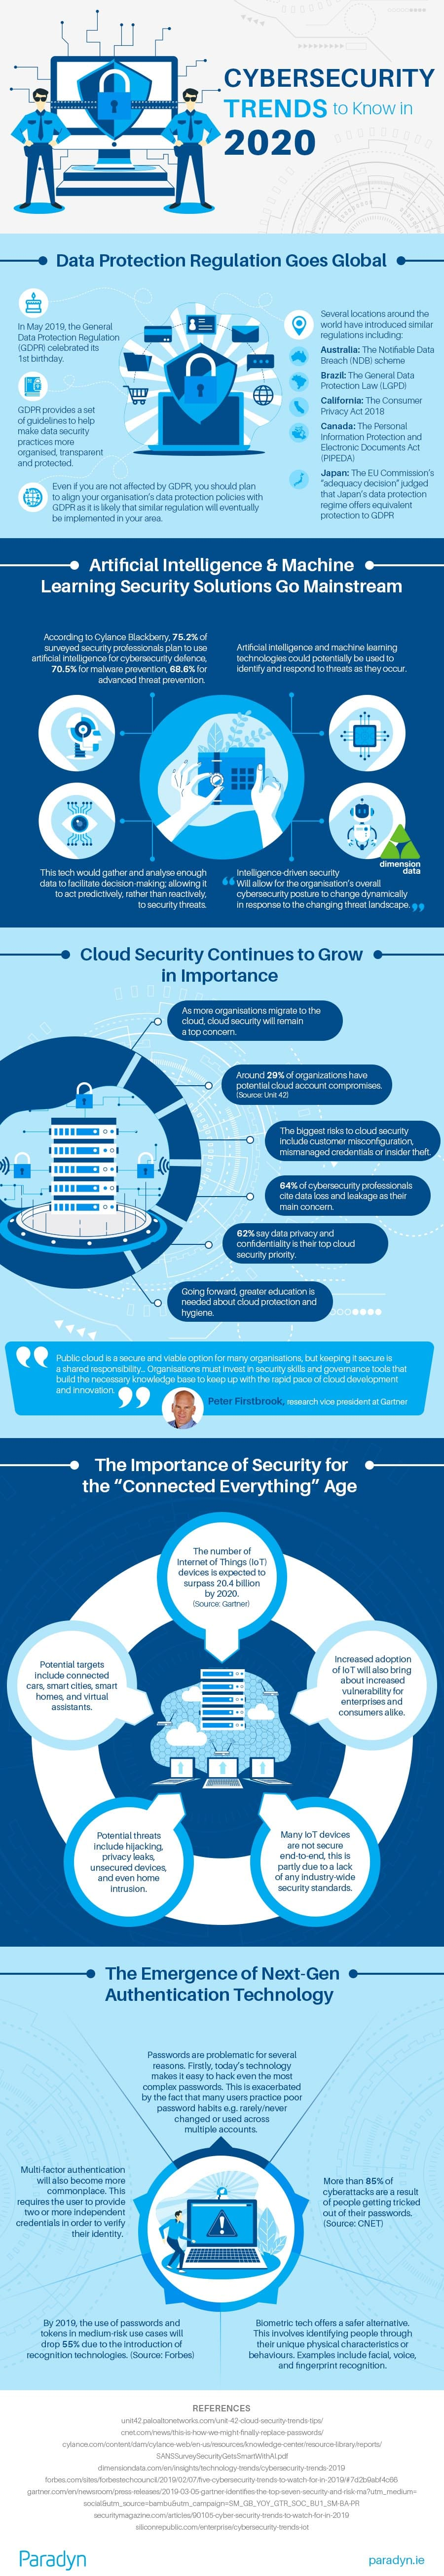 Infographic - Cyber Security Trends to Know in 2020